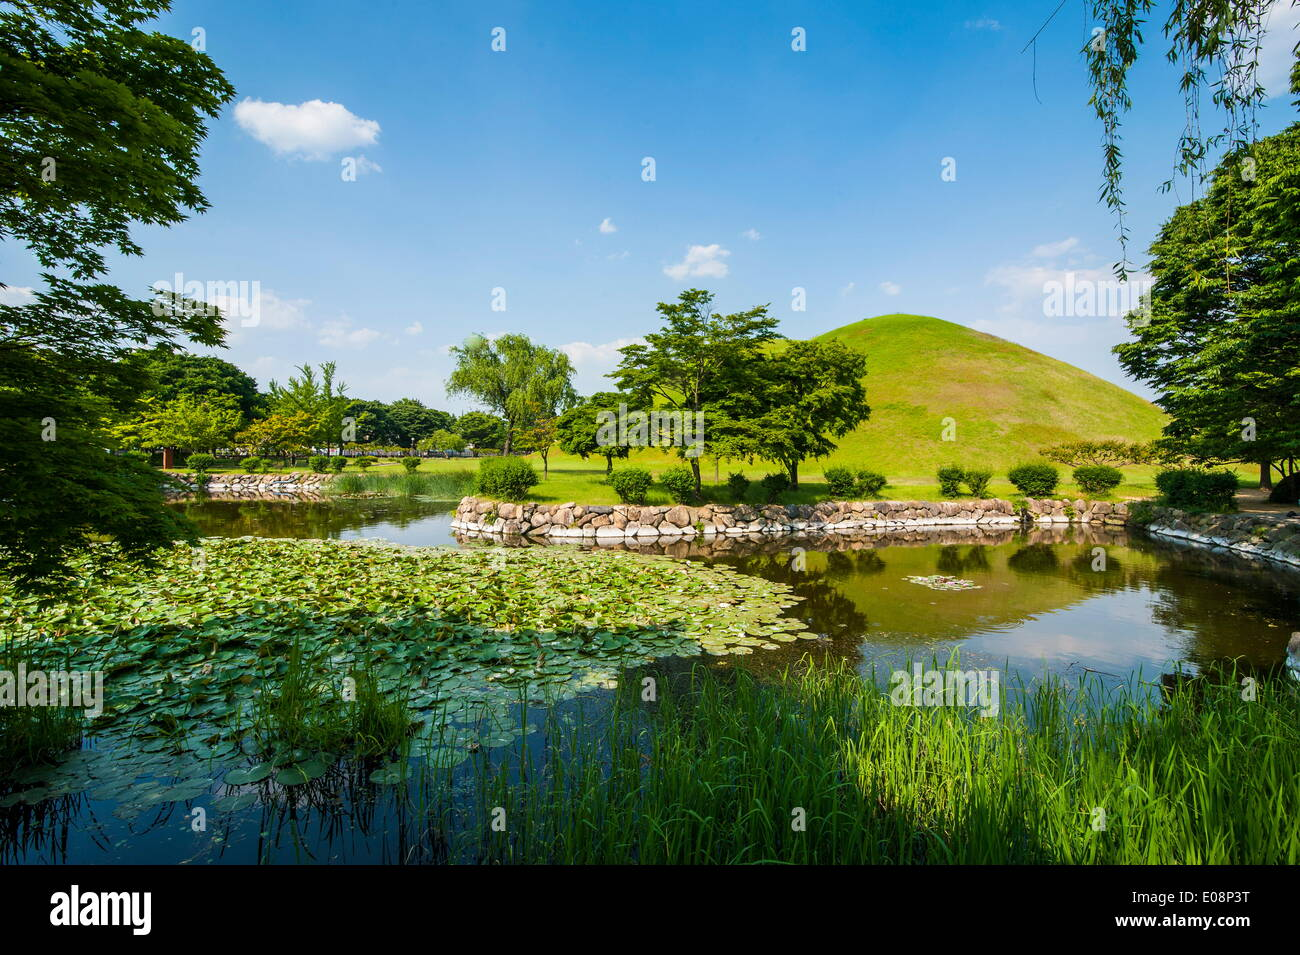 Tumuli park with its tombs from the Shilla monarchs, Gyeongju, UNESCO World Heritage Site, South Korea, Asia Stock Photo